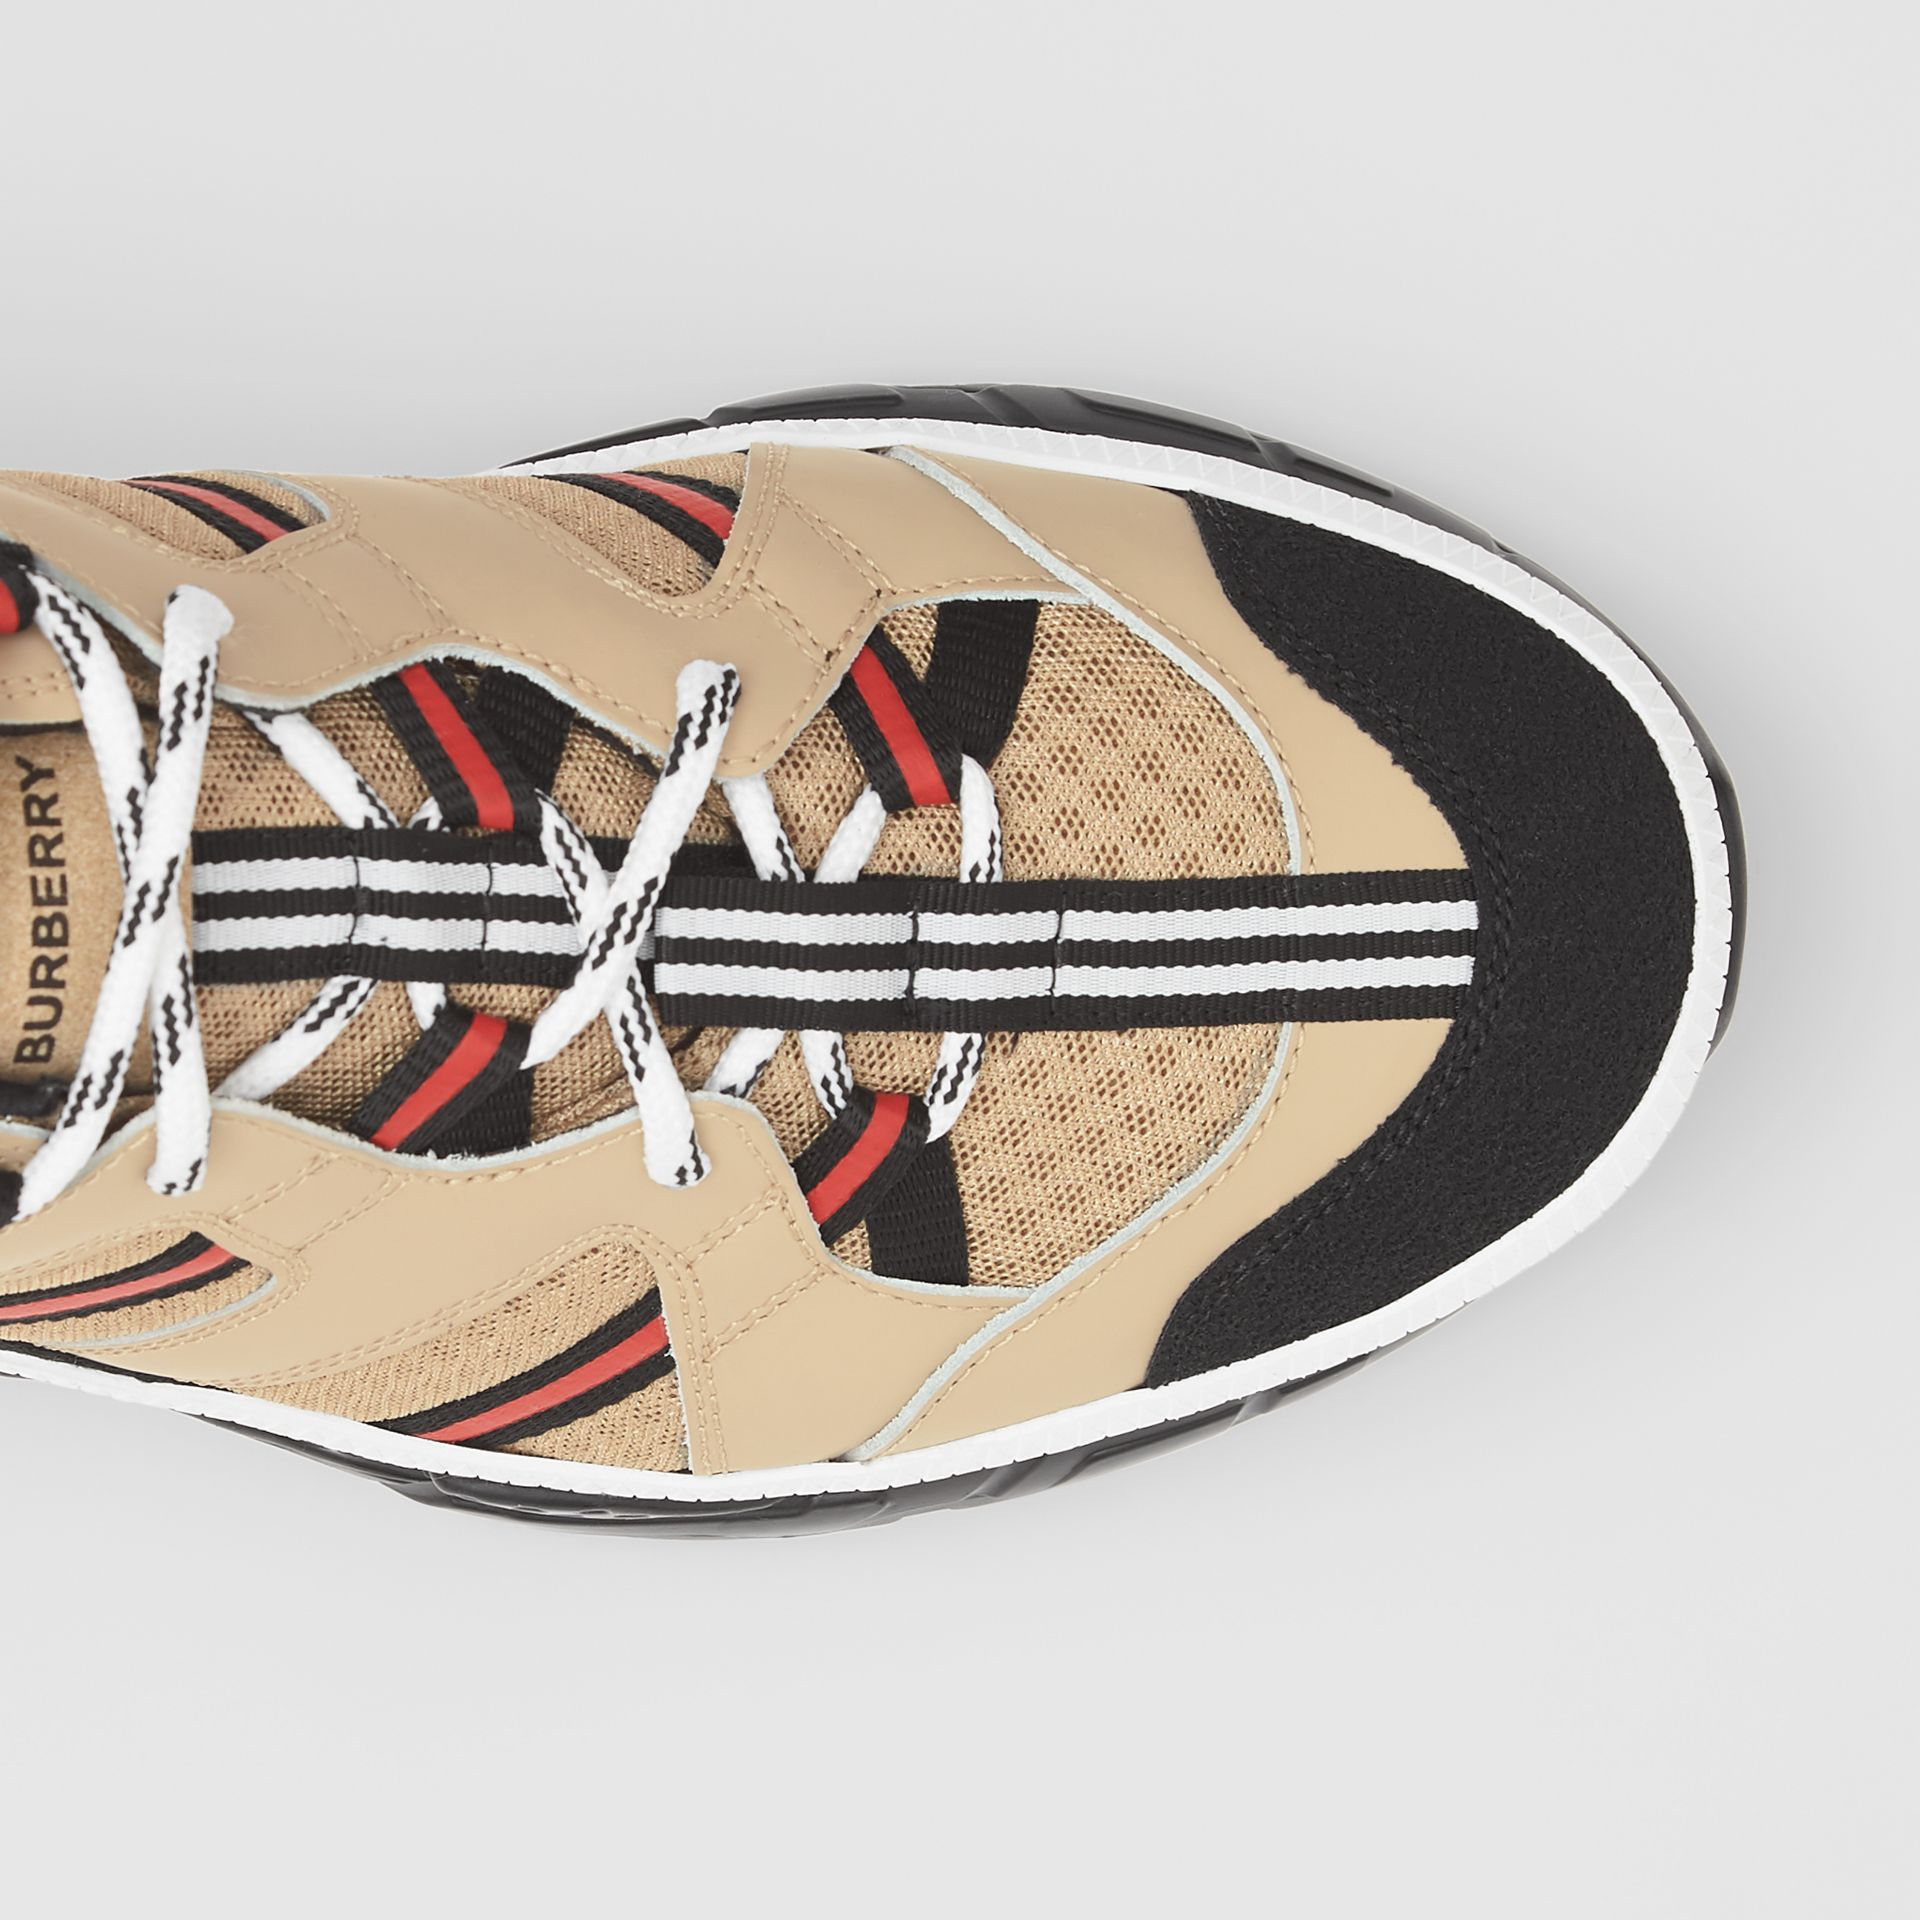 Mesh and Leather Union Sneakers in Beige - Men | Burberry - gallery image 1